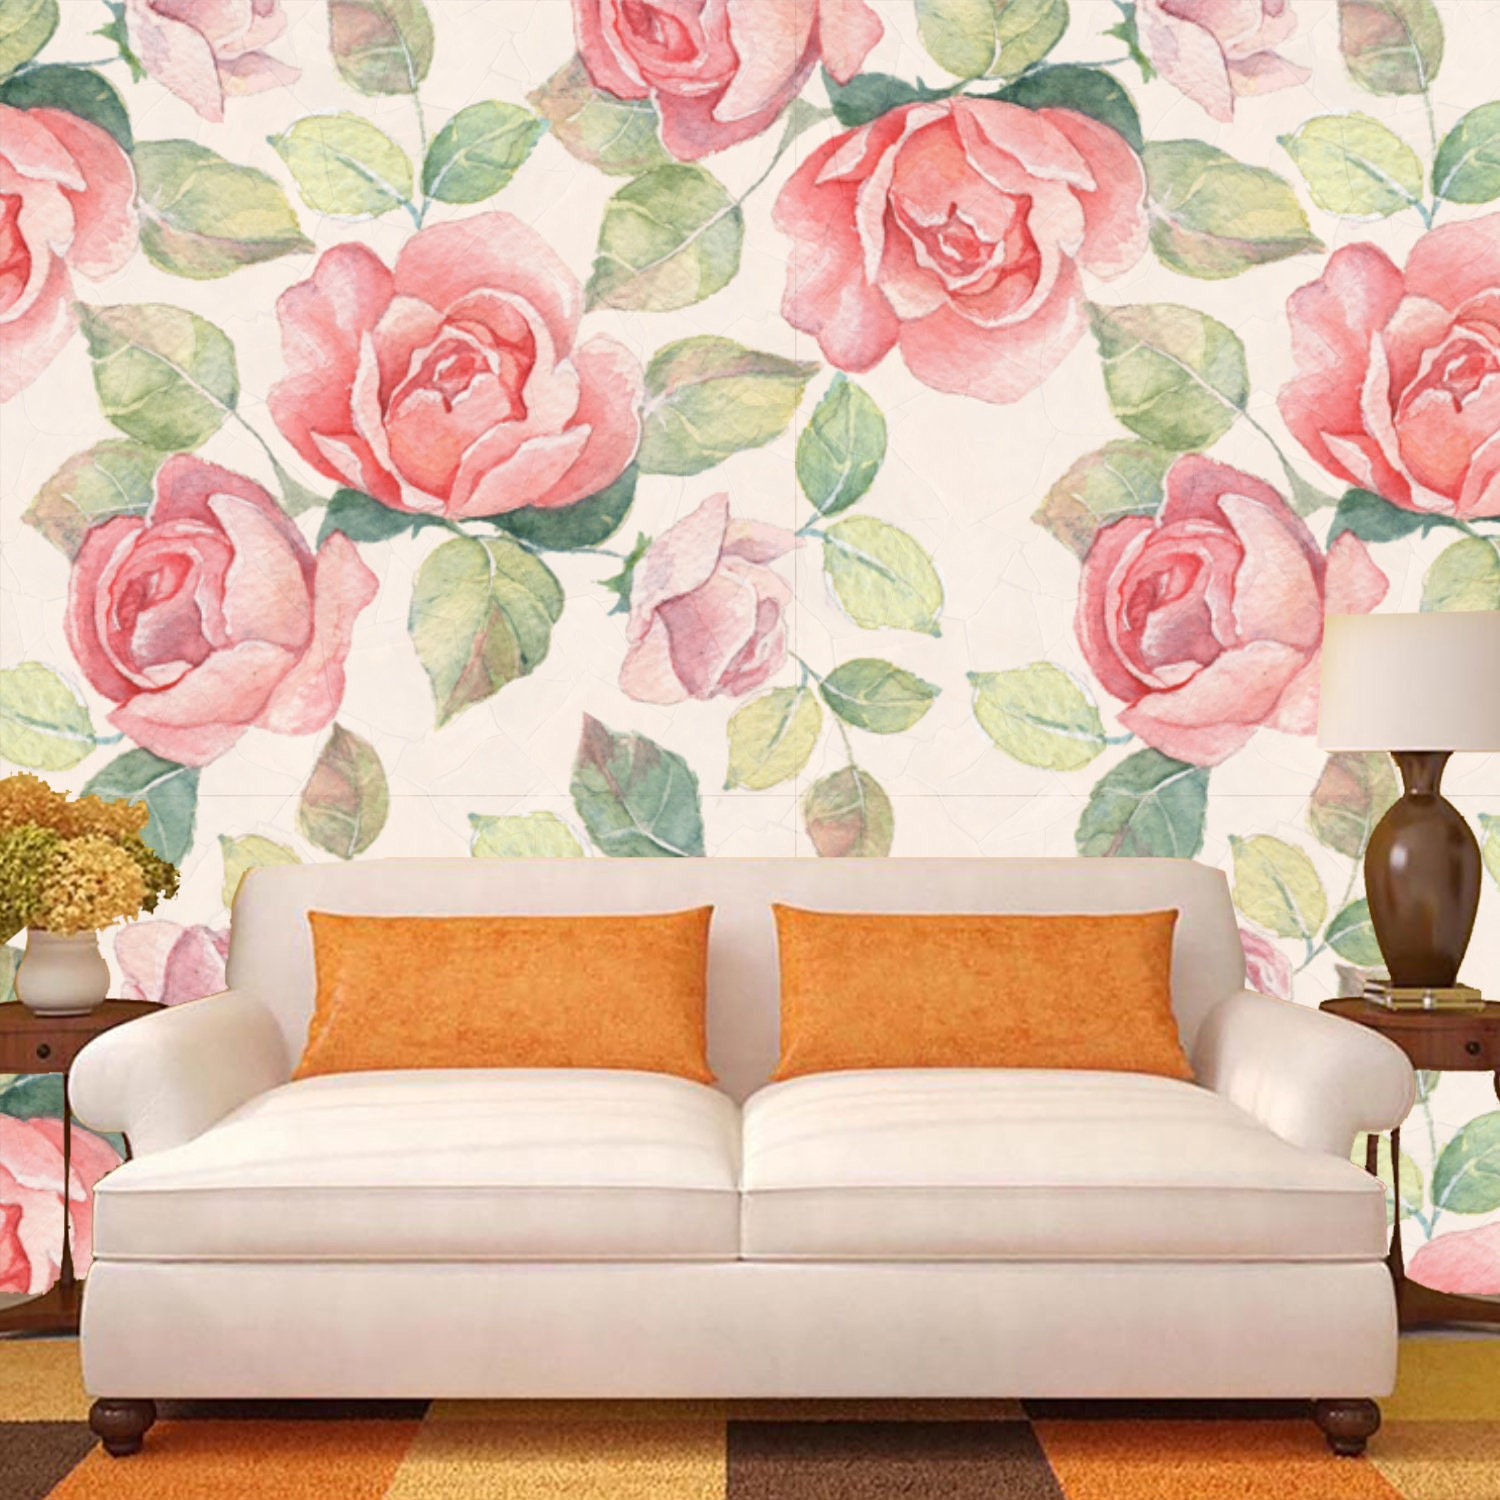 Vintage Large Floral Wallpaper Mural Of Pink Watercolor Roses Etsy